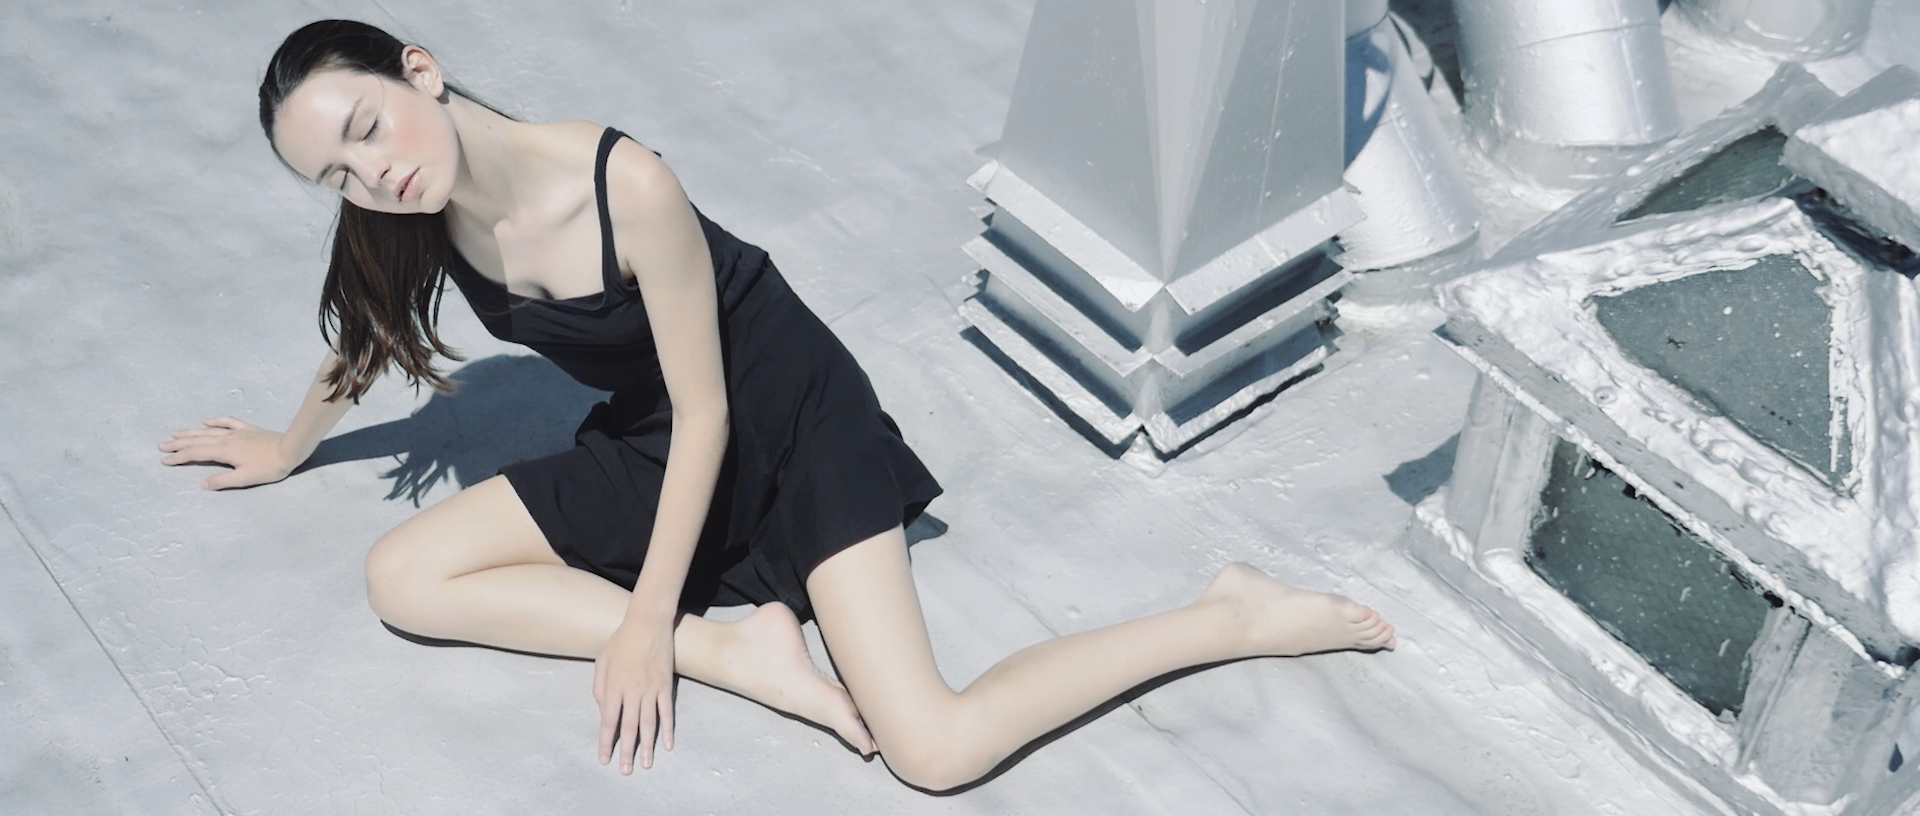 Fashion film with model Kalyn on Rooftop NY summer 2016 shot by FX Boucherak philocalie films